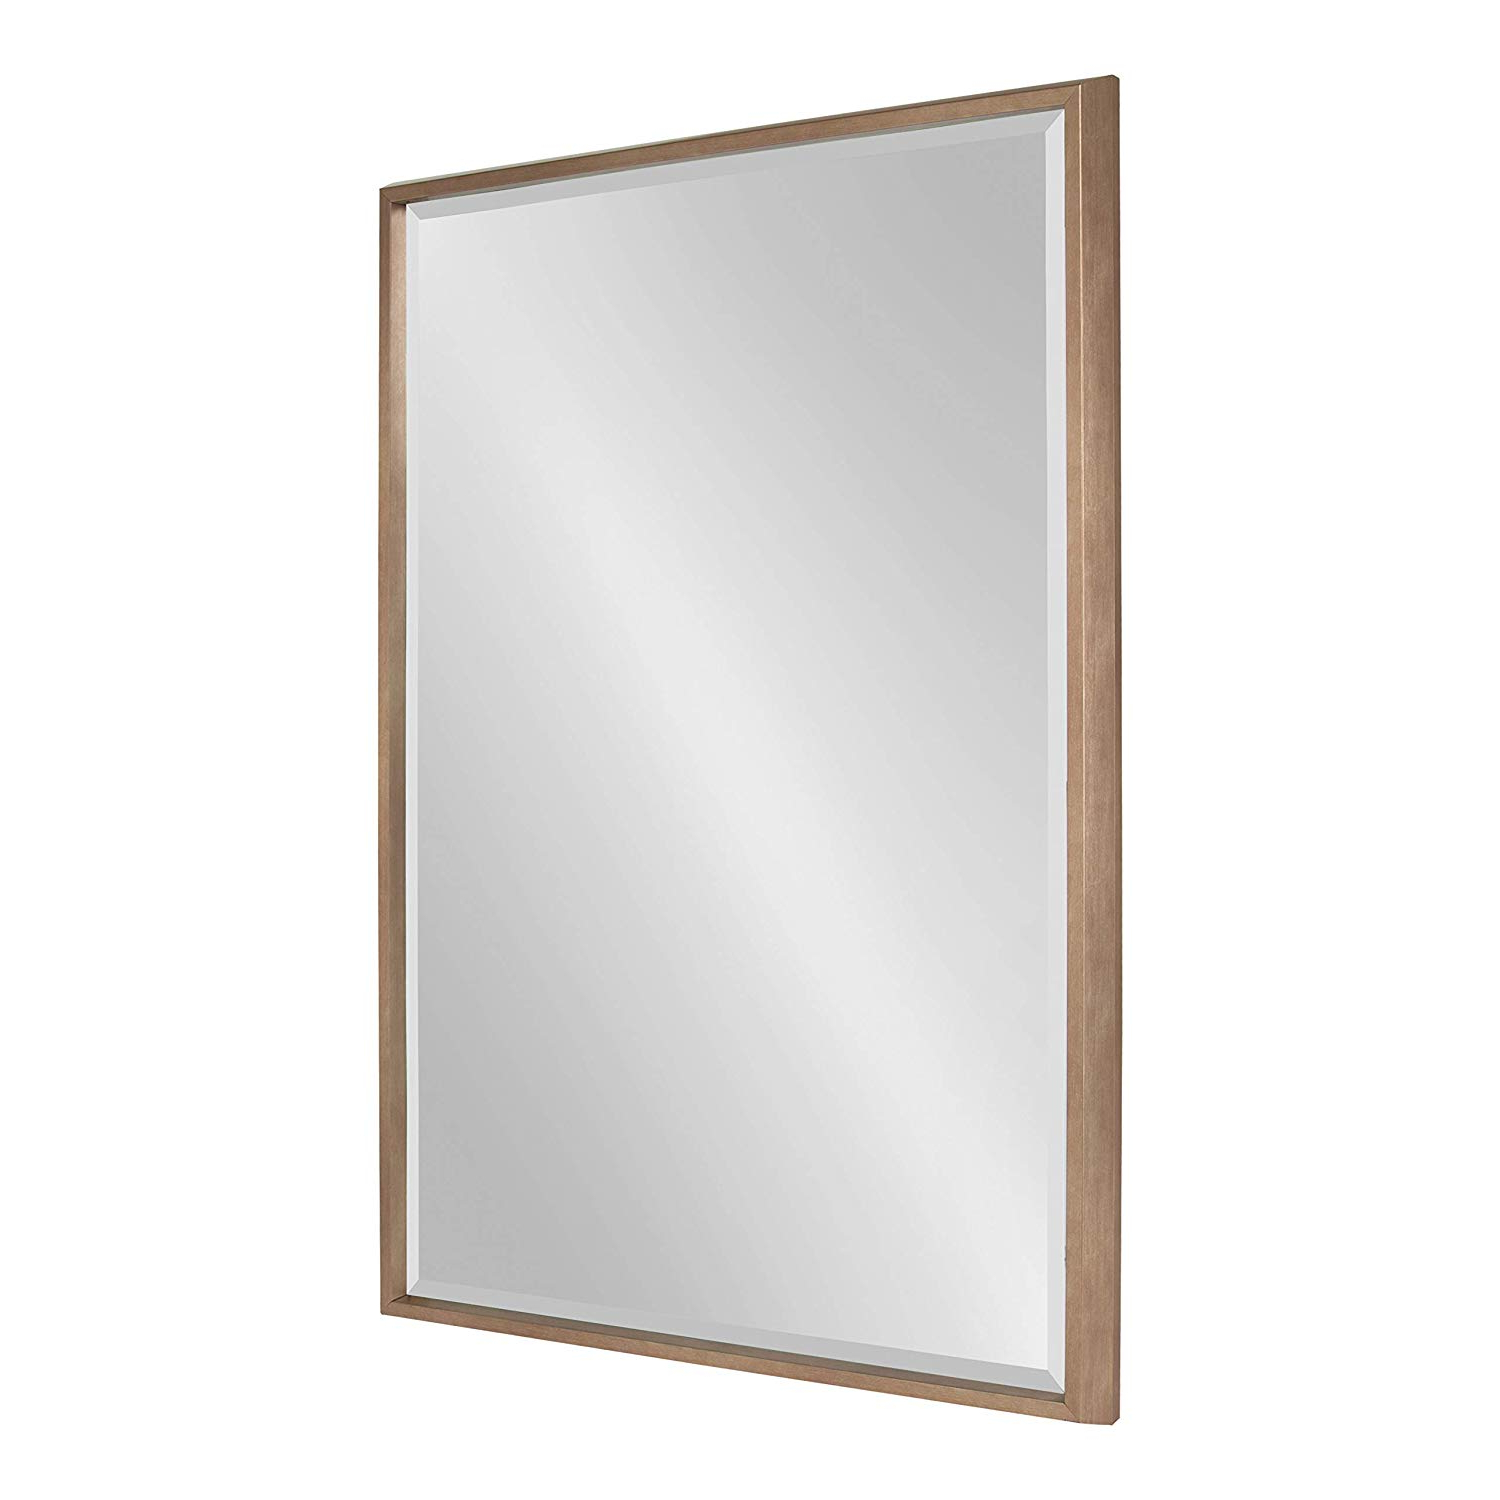 Current Amazon: Kate And Laurel Blake Modern Glam Framed Beveled Wall With Regard To Glam Beveled Accent Mirrors (View 8 of 20)